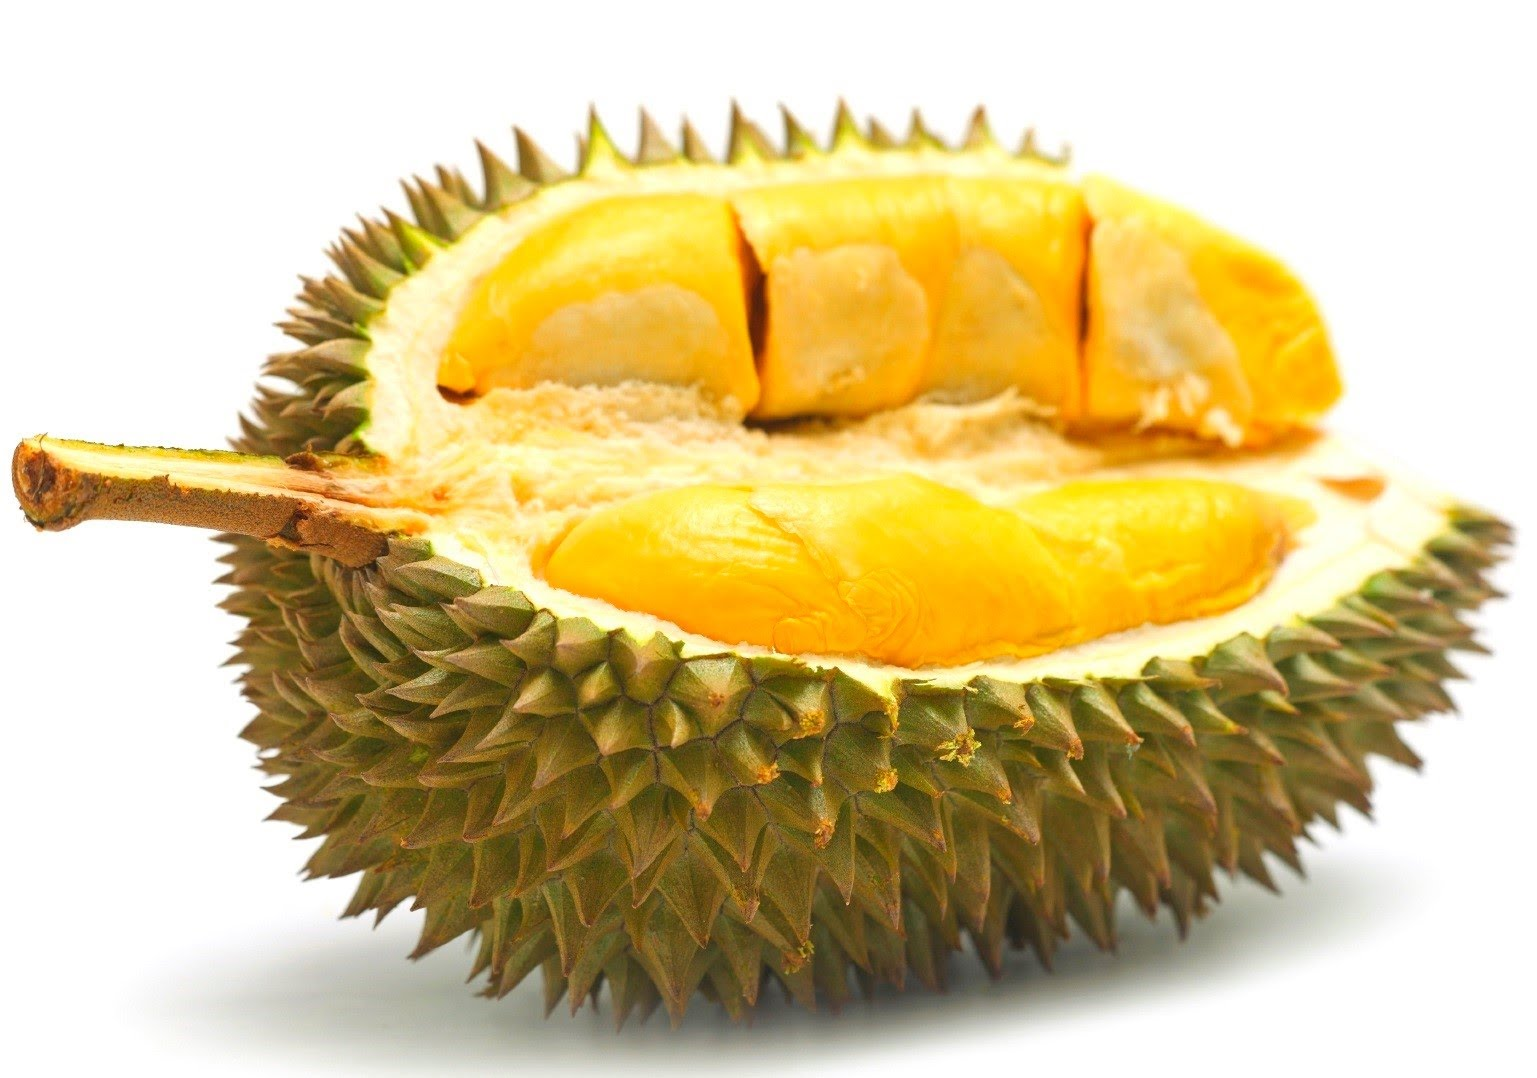 Durian Fruit - Smelly, But Also Incredibly Nutritious